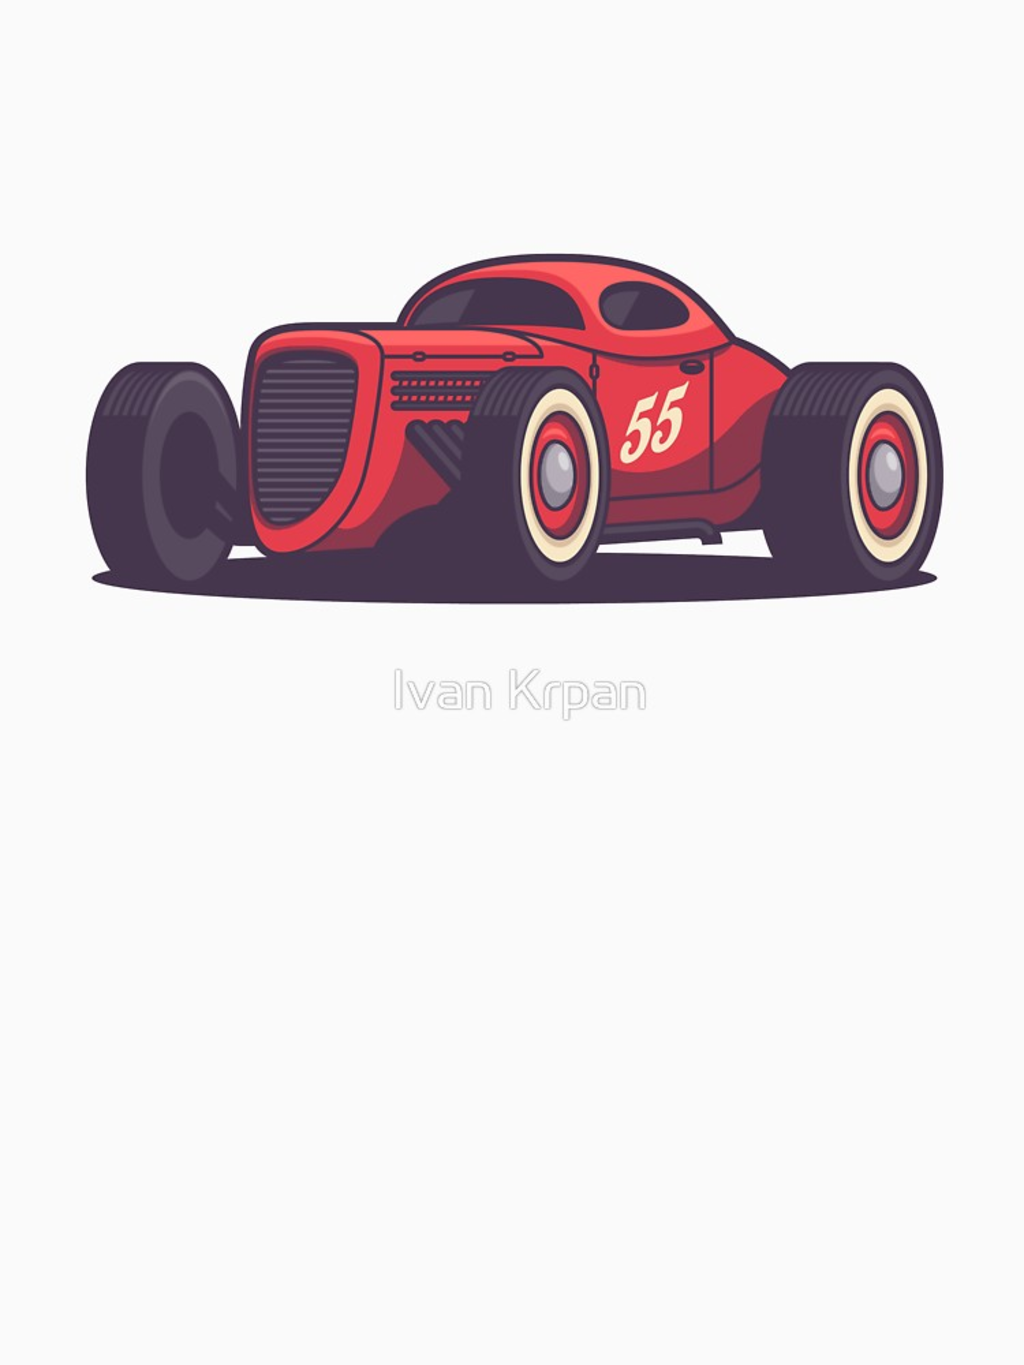 RedBubble: Vintage Hot Rod Classic Street Racer - Red